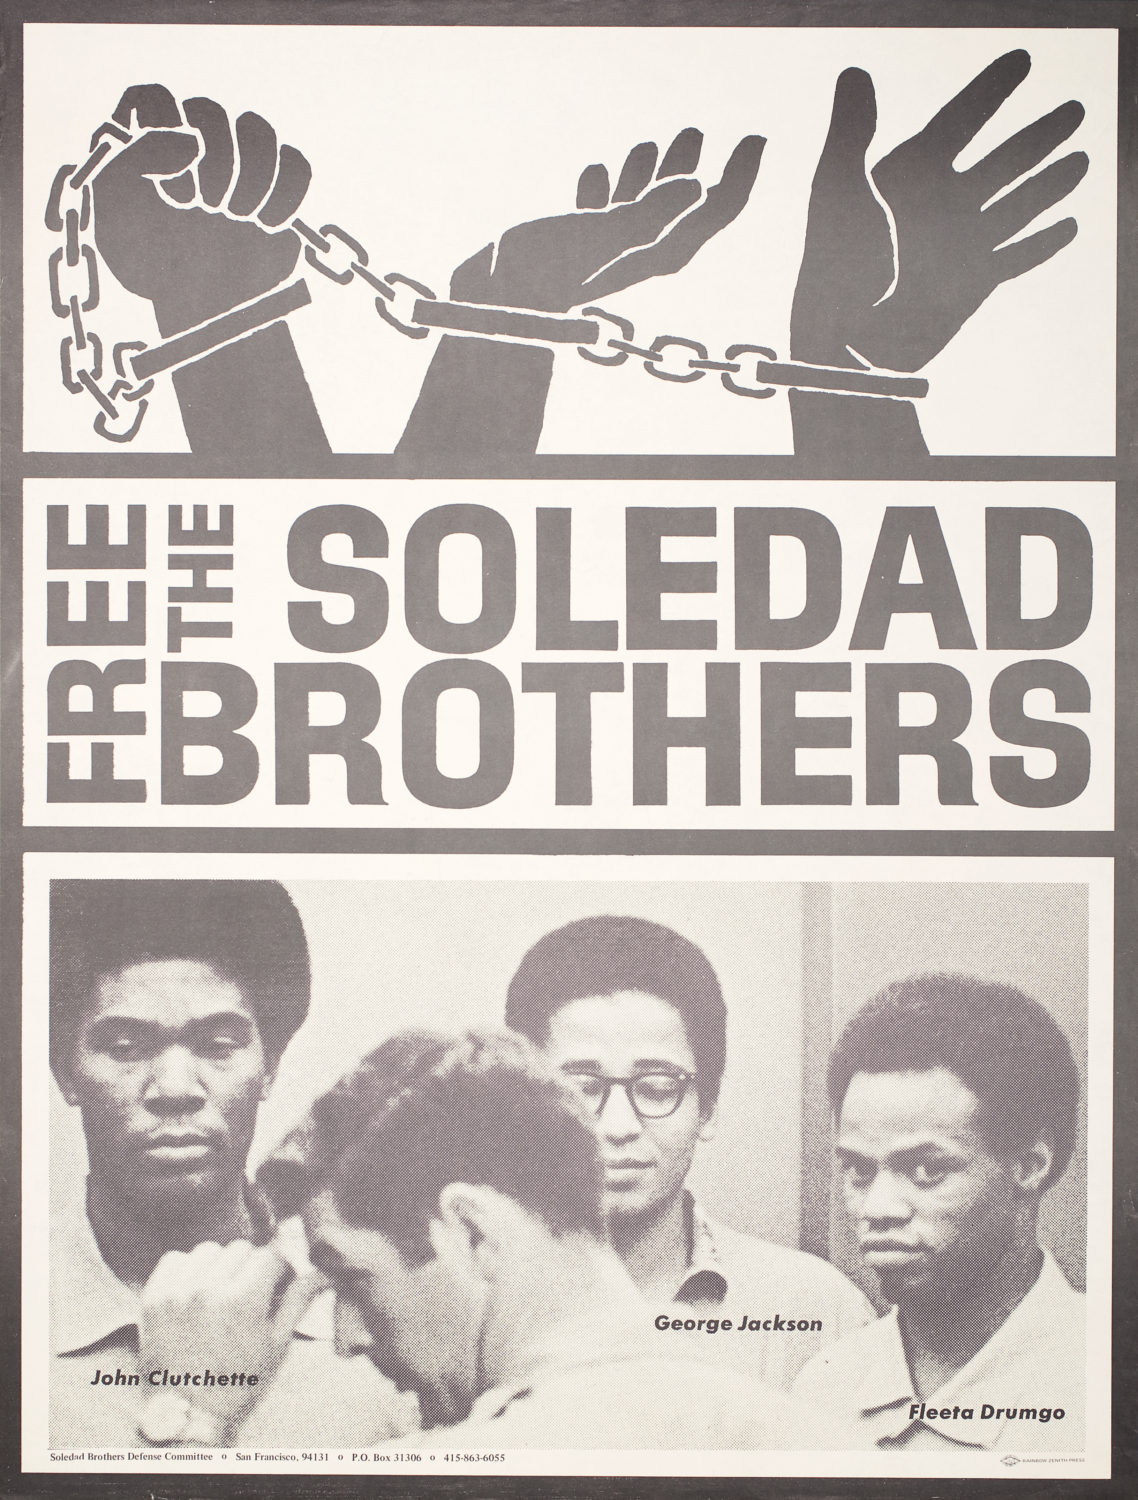 Free-the-Soledad-Brothers-poster-John-Clutchette-George-Jackson-Fleeta-Drumgo-1968, Soledad uncensored: Racism and the hyper-policing of Black bodies, Part 2, Behind Enemy Lines